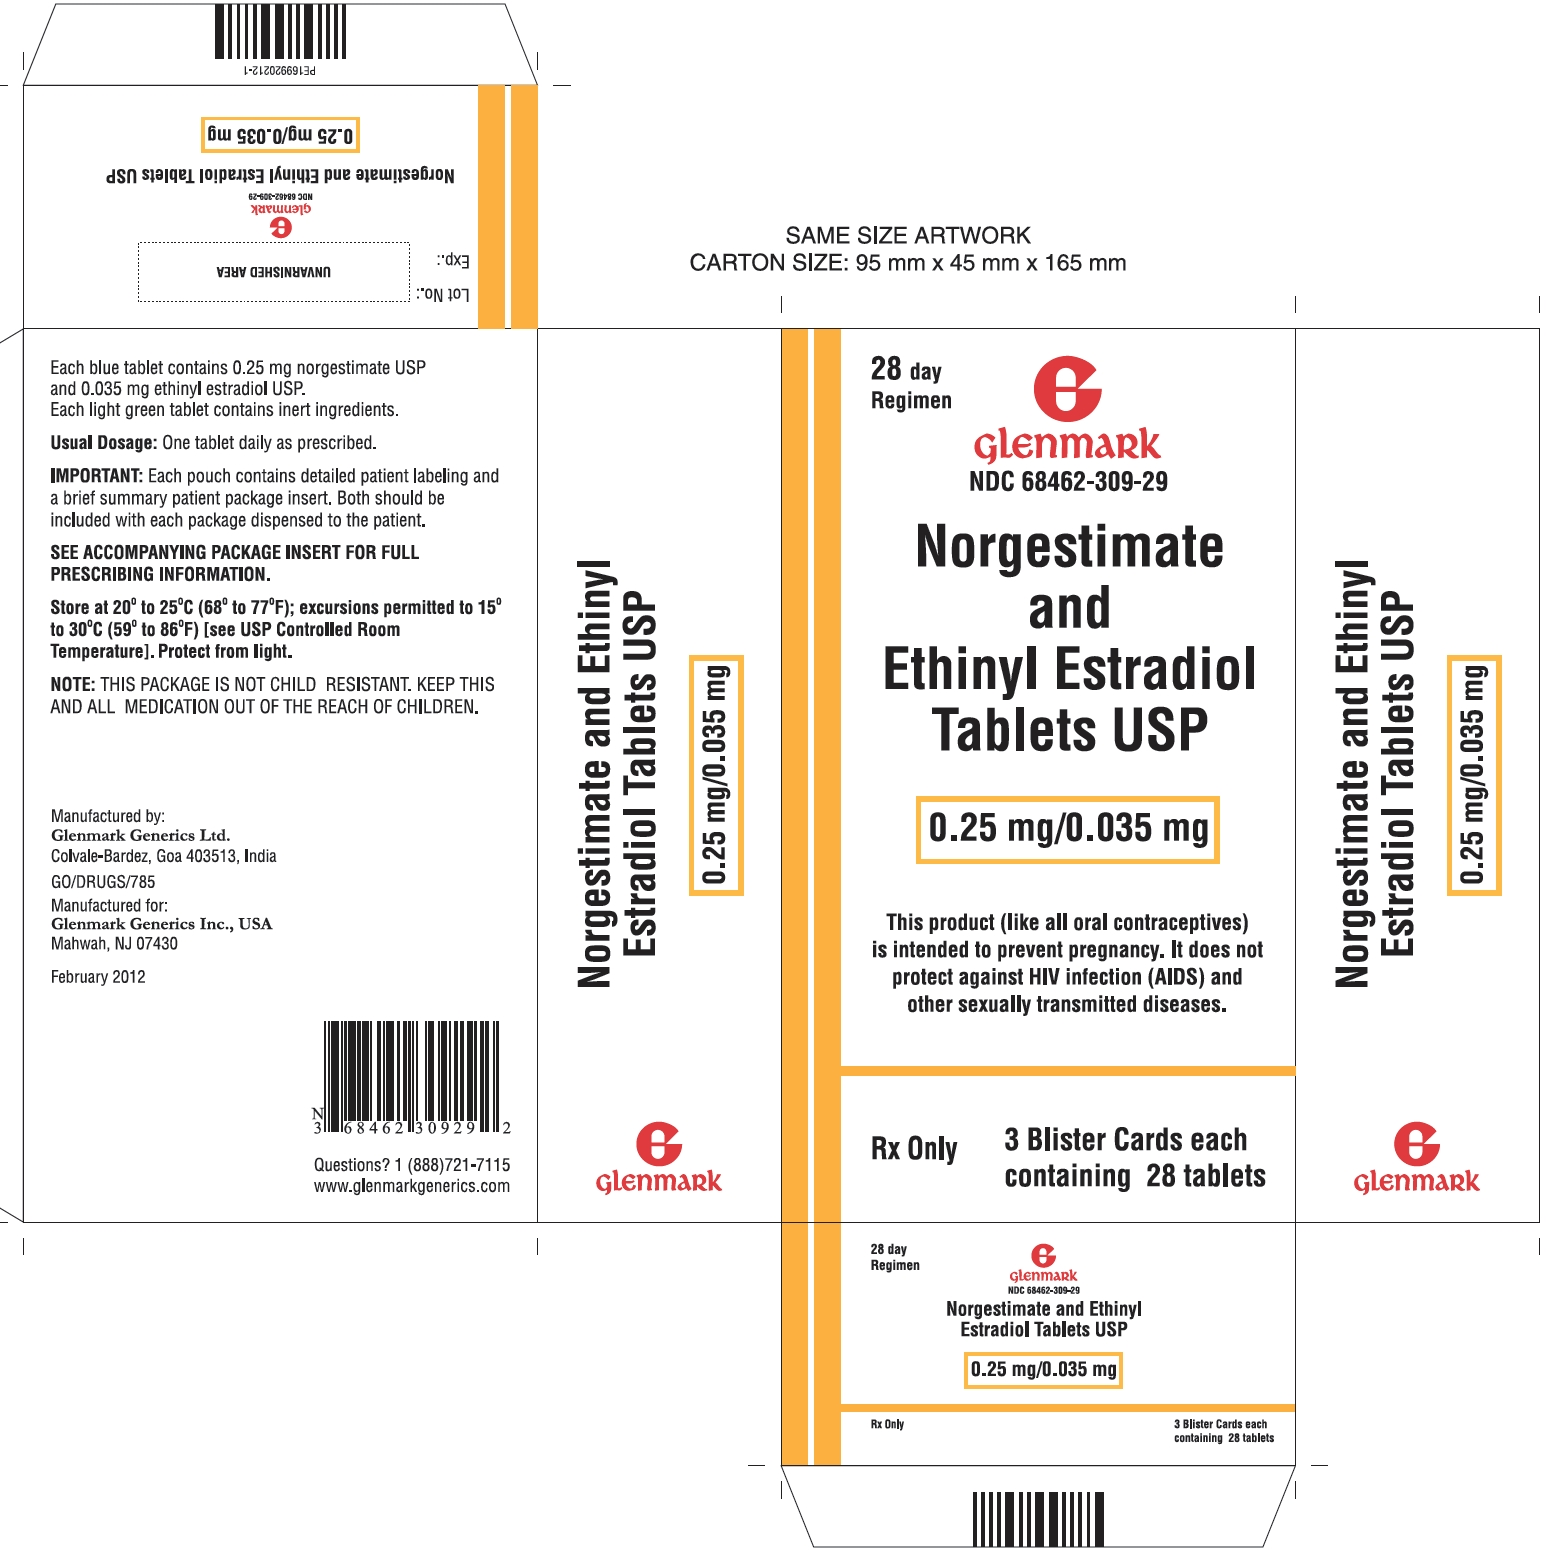 DailyMed - NORGESTIMATE AND ETHINYL ESTRADIOL